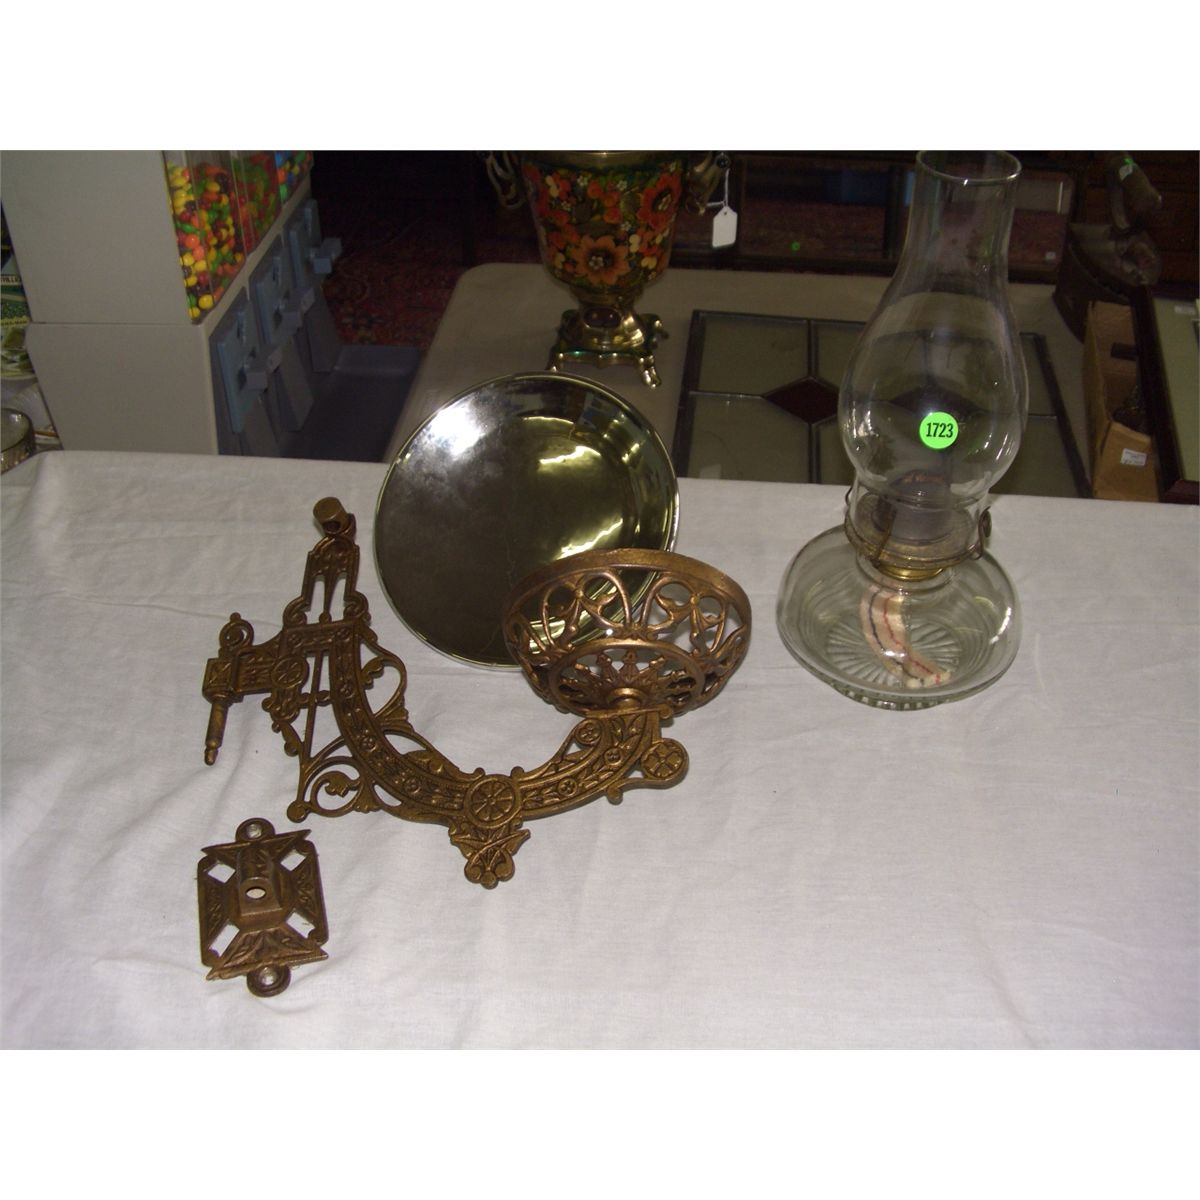 Antique Wall Oil Lamp With Holder And Mercury Reflector